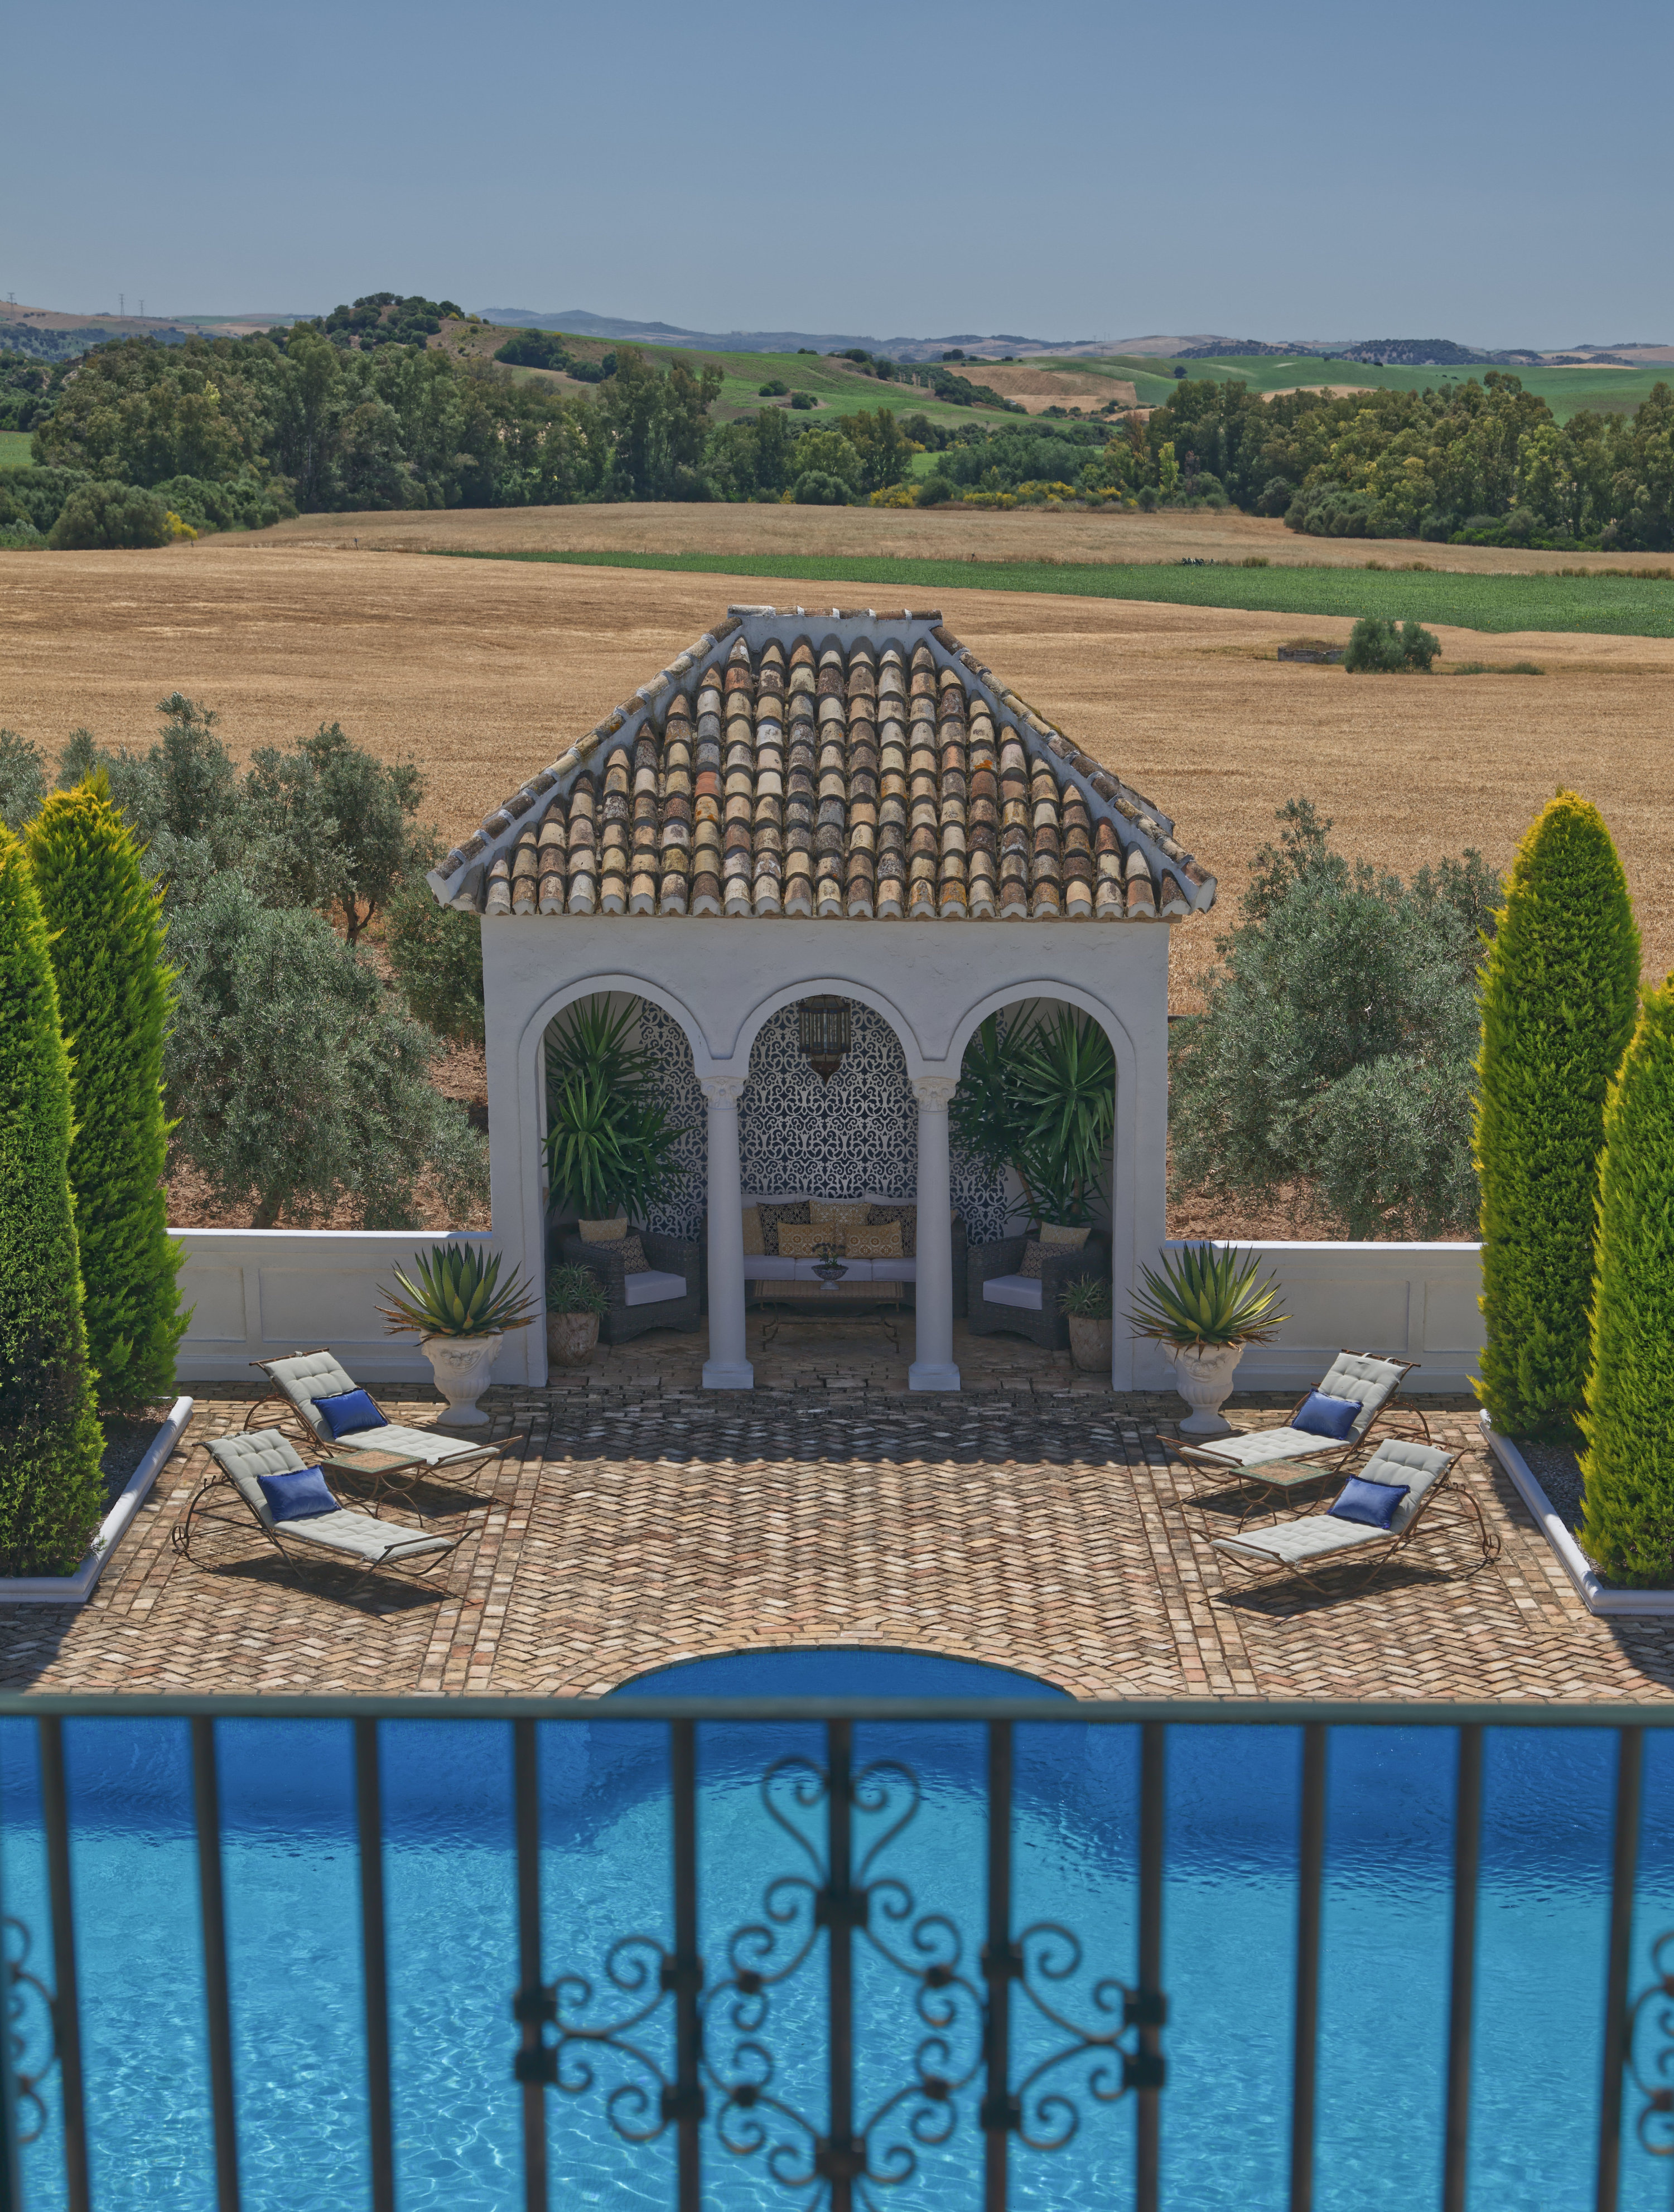 7 bedroom Andalucia, Spain